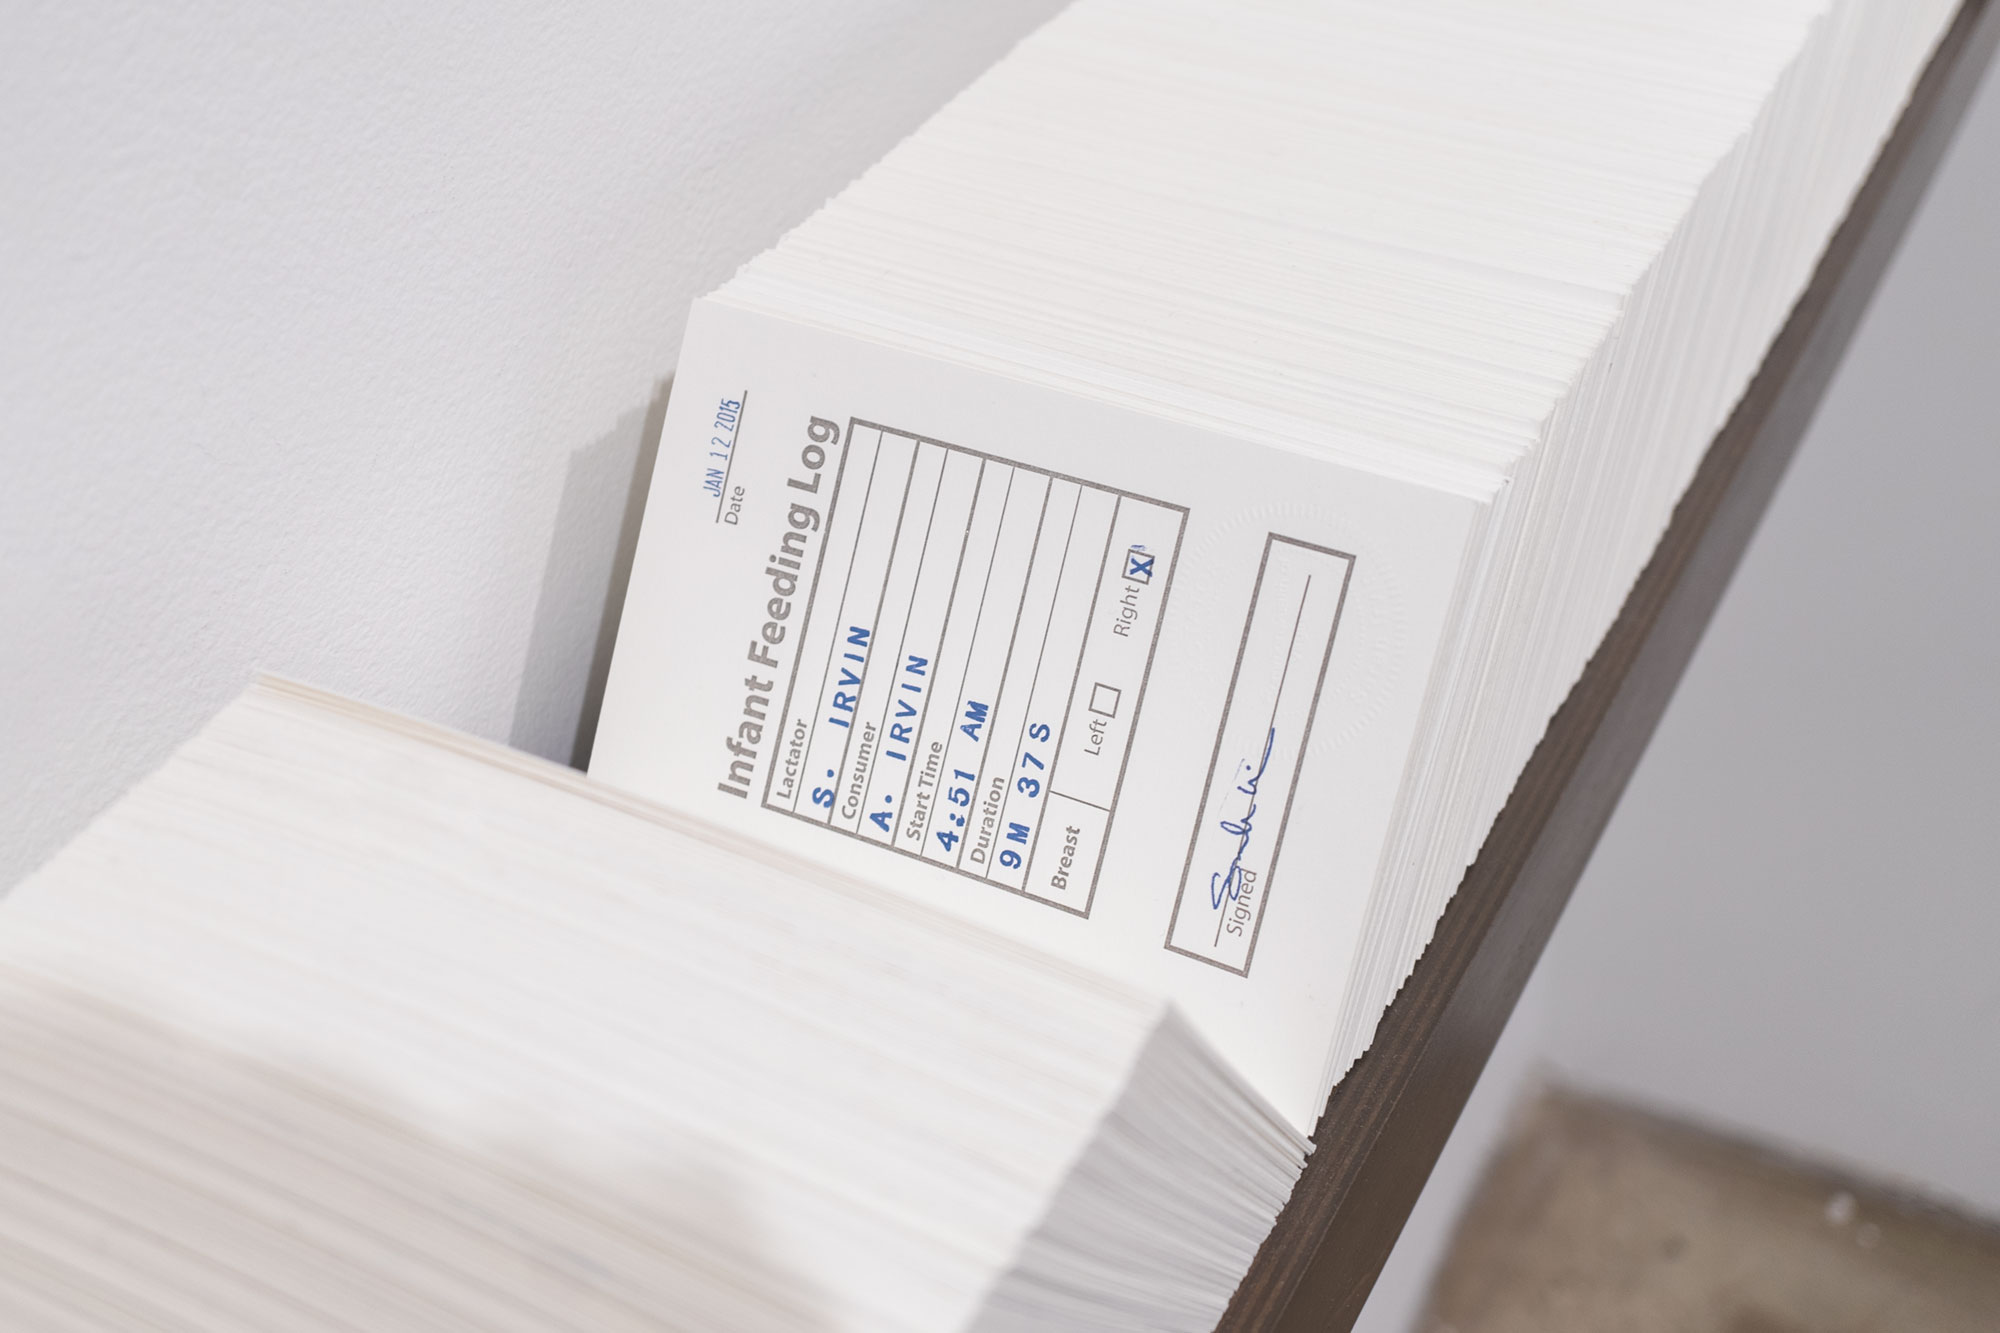 Sarah Irvin, Infant Feeding Log, 2018, Card catalogue with 2,435 unique forms, hand-set letterpress colophon & title page, metal rods, wooden base w/ milk paint, 7 x 78 1/4 inches